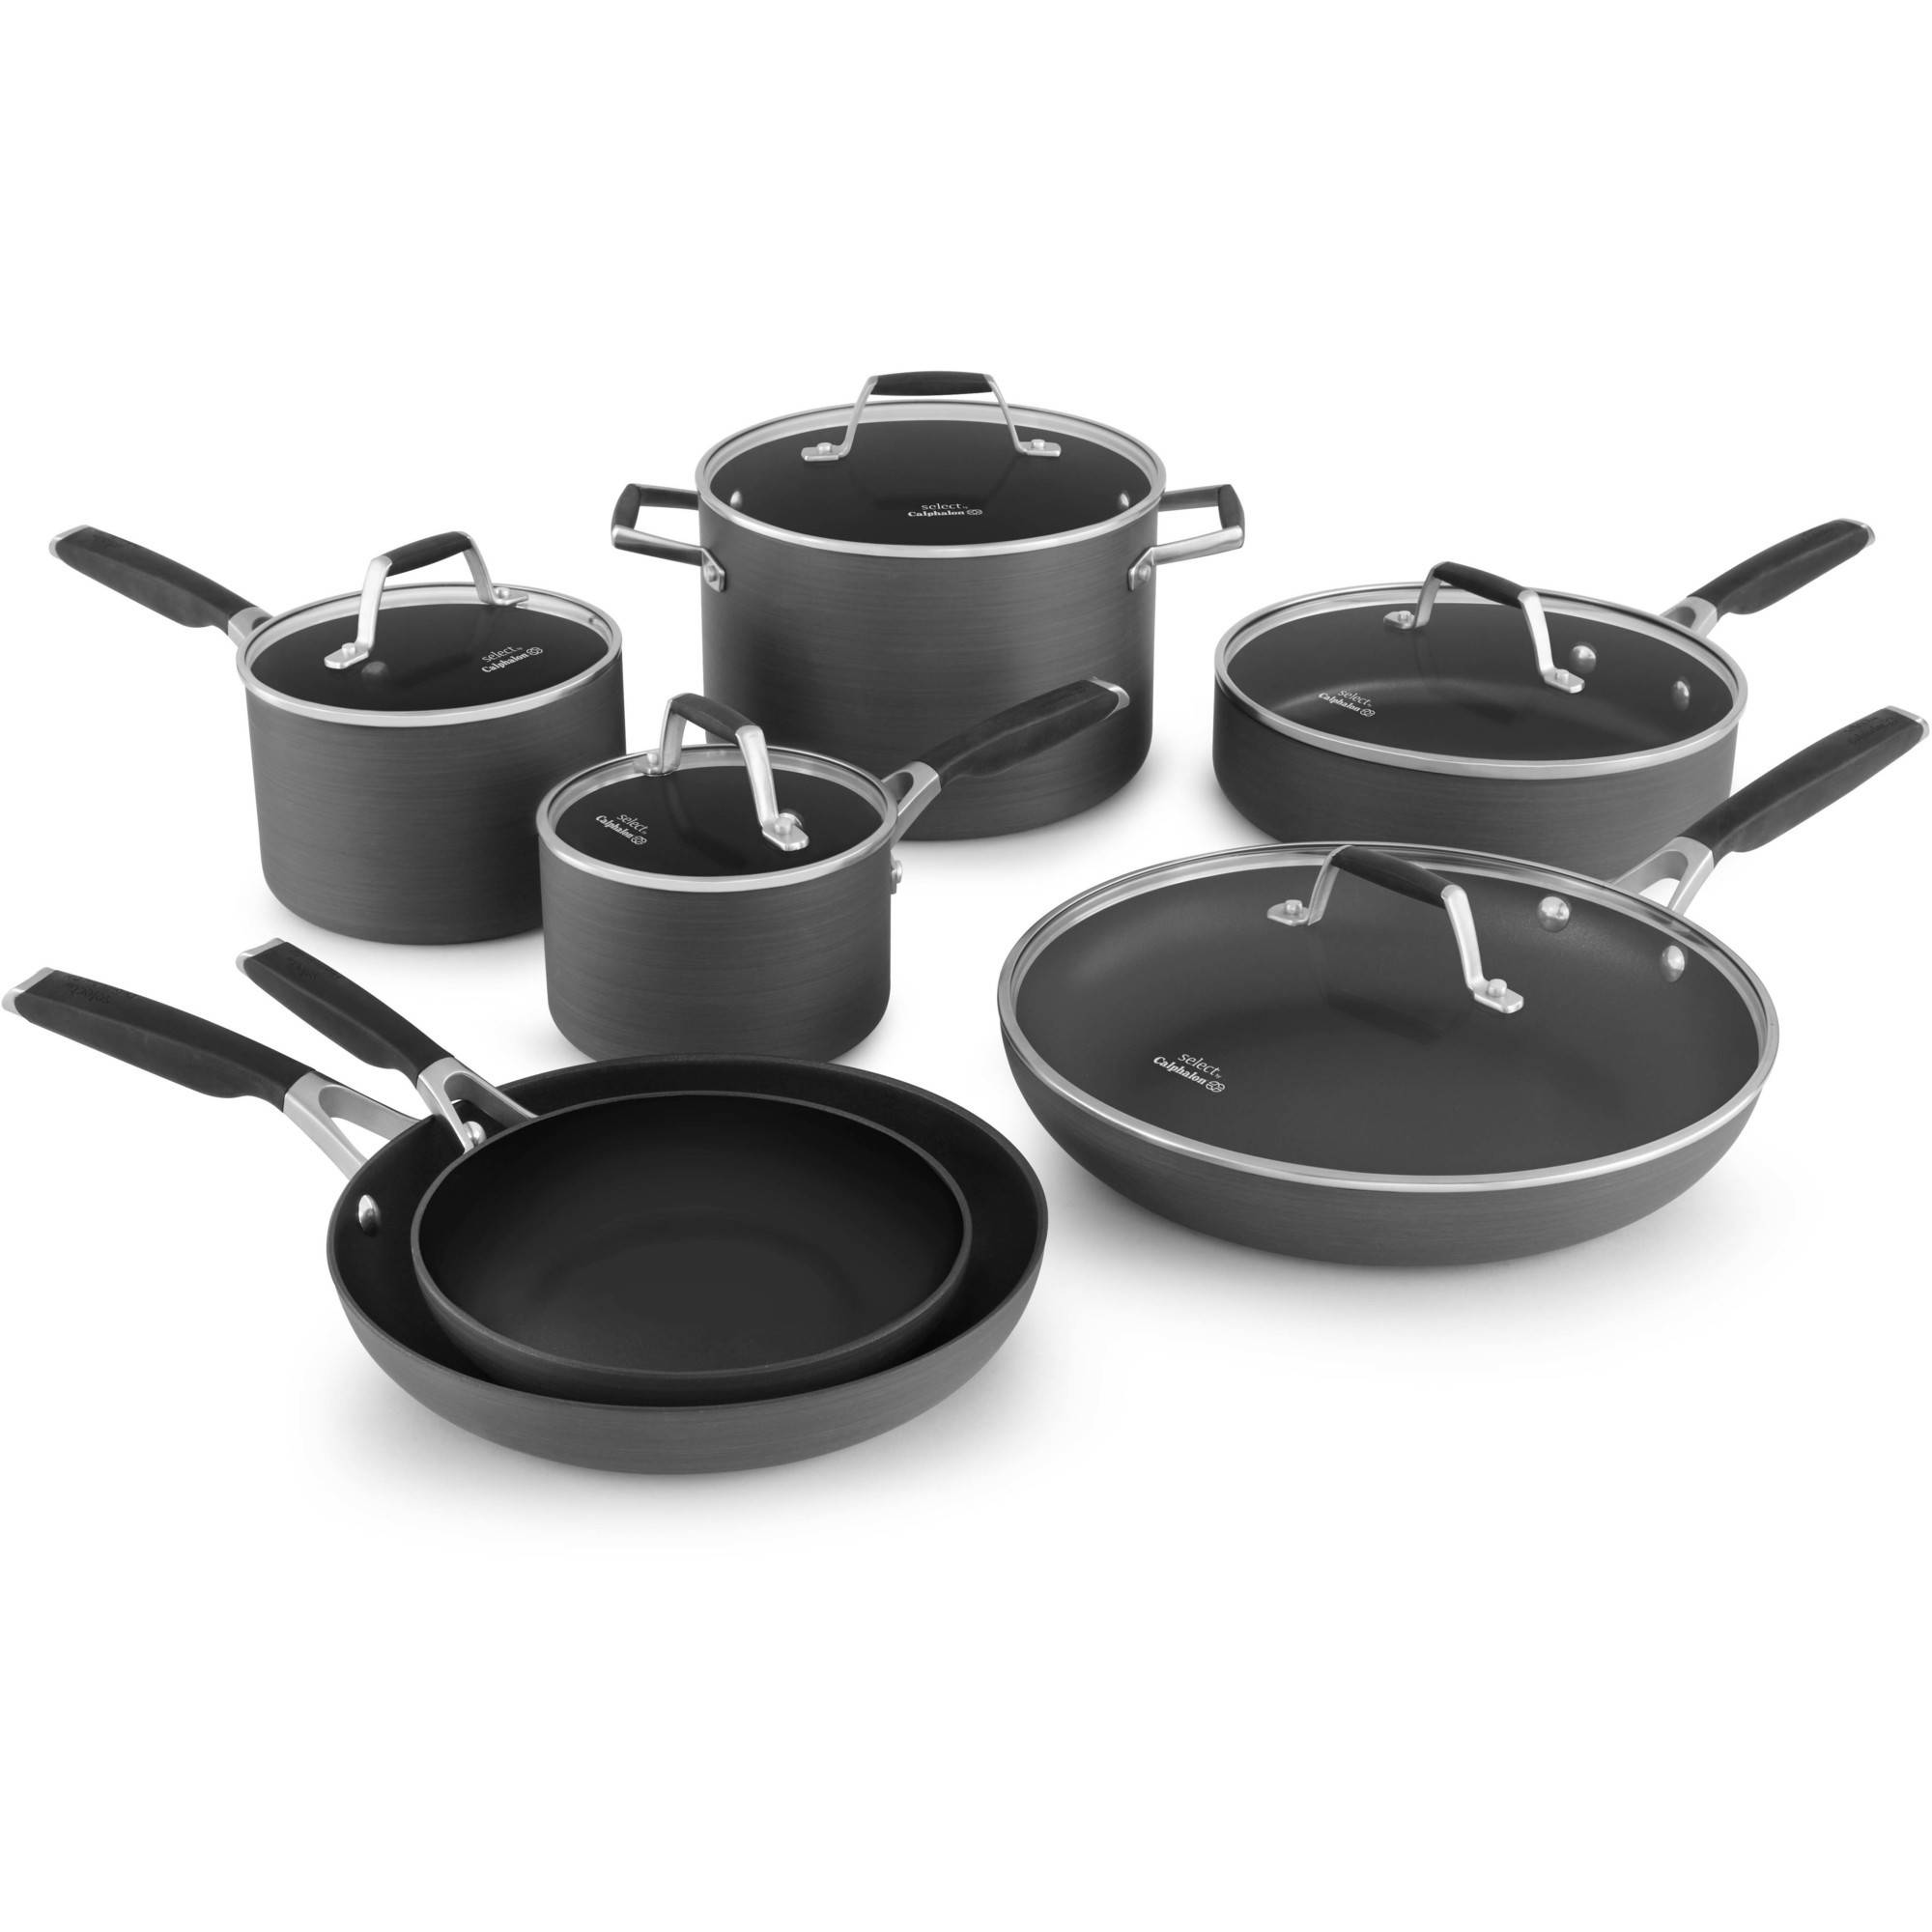 Select by Calphalon Hard-Anodized Nonstick 12-piece Cookware Set by